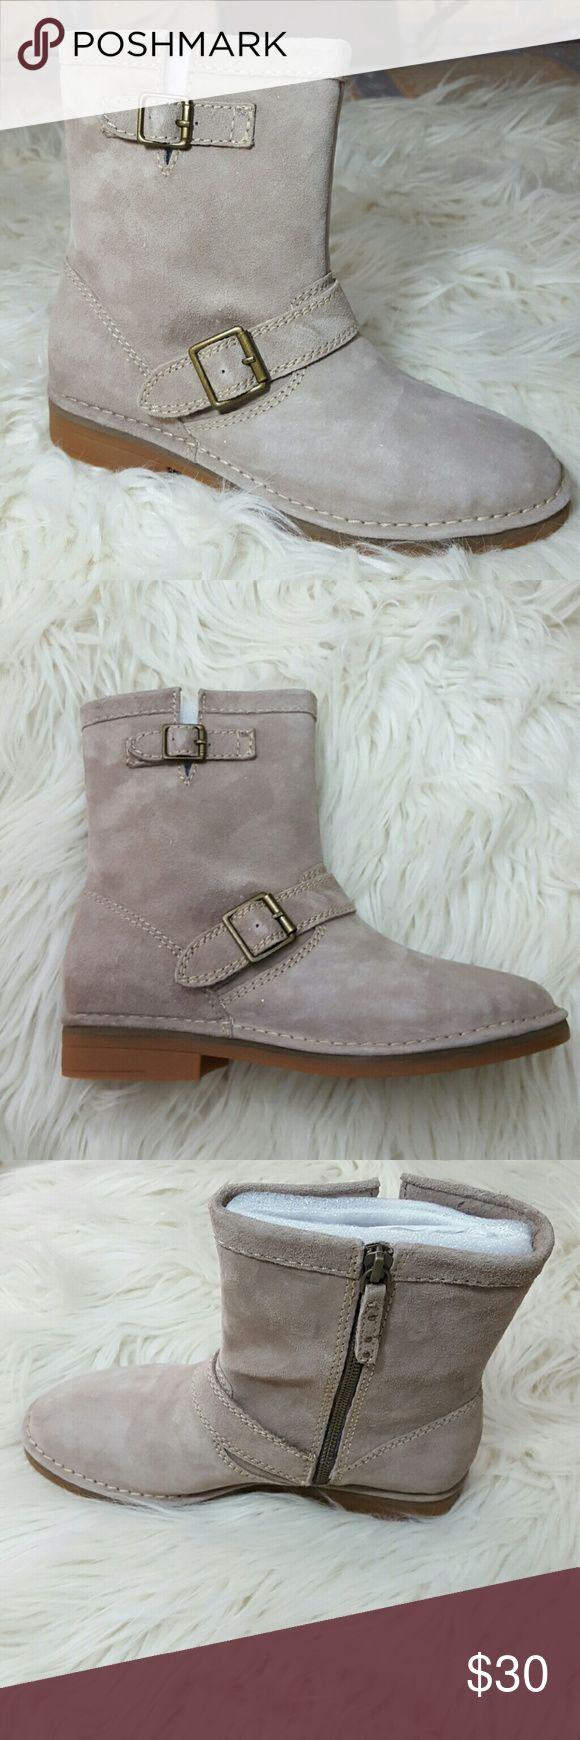 Hush Puppies Aydin Catelyn Taype Suede Boot USA Size 8 Brand New In Box.  Completely wrapped. Zios up the side.  Buckle detail  Rubber sole.   NICE! Hush Puppies Shoes Ankle Boots & Booties